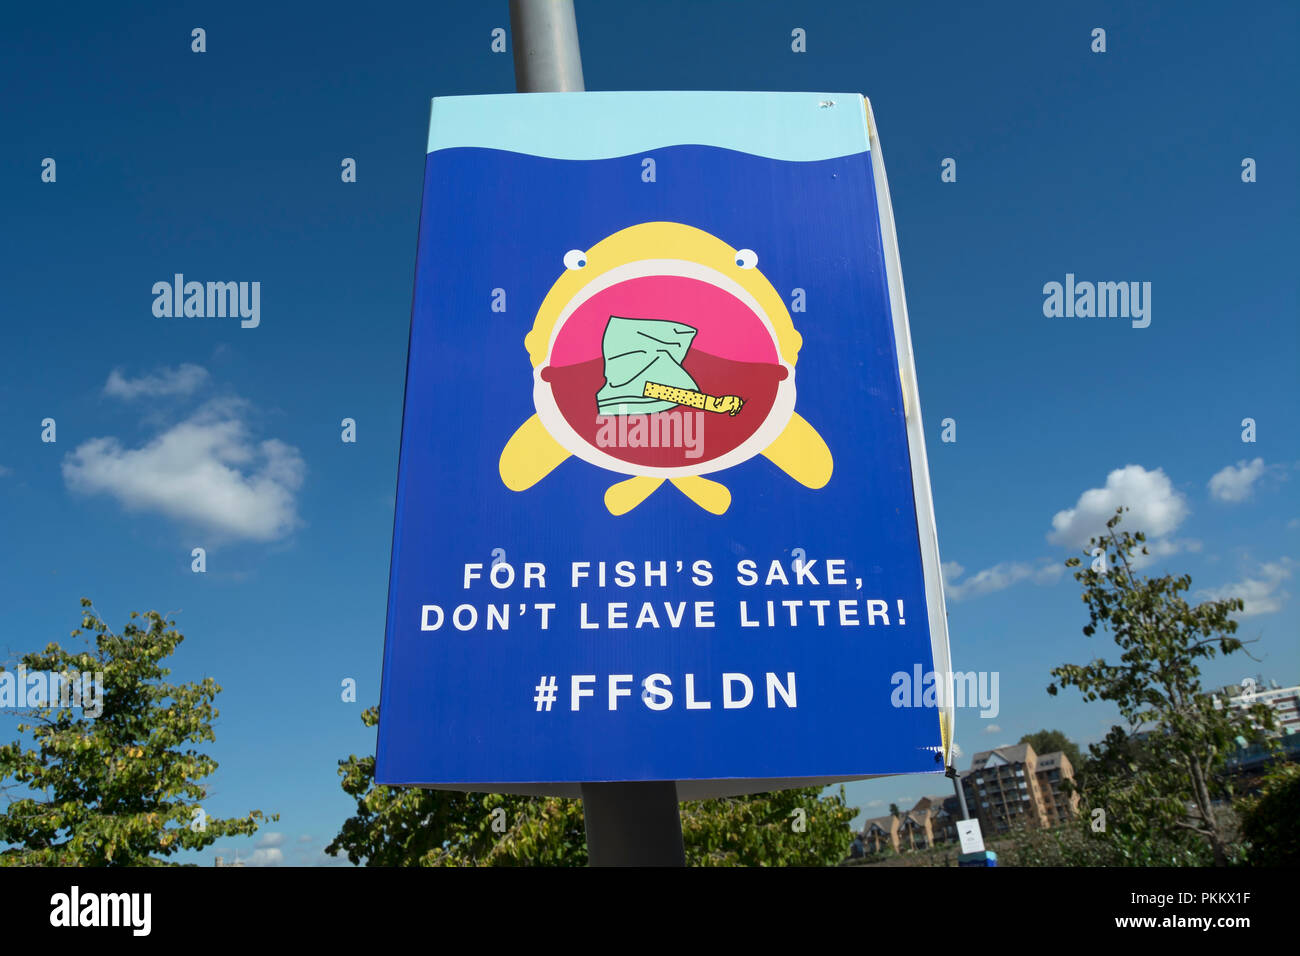 for fish's sake don't leave litter, no littering sign by the river thames in putney, london, england placed by the environmental charity, hubbub - Stock Image